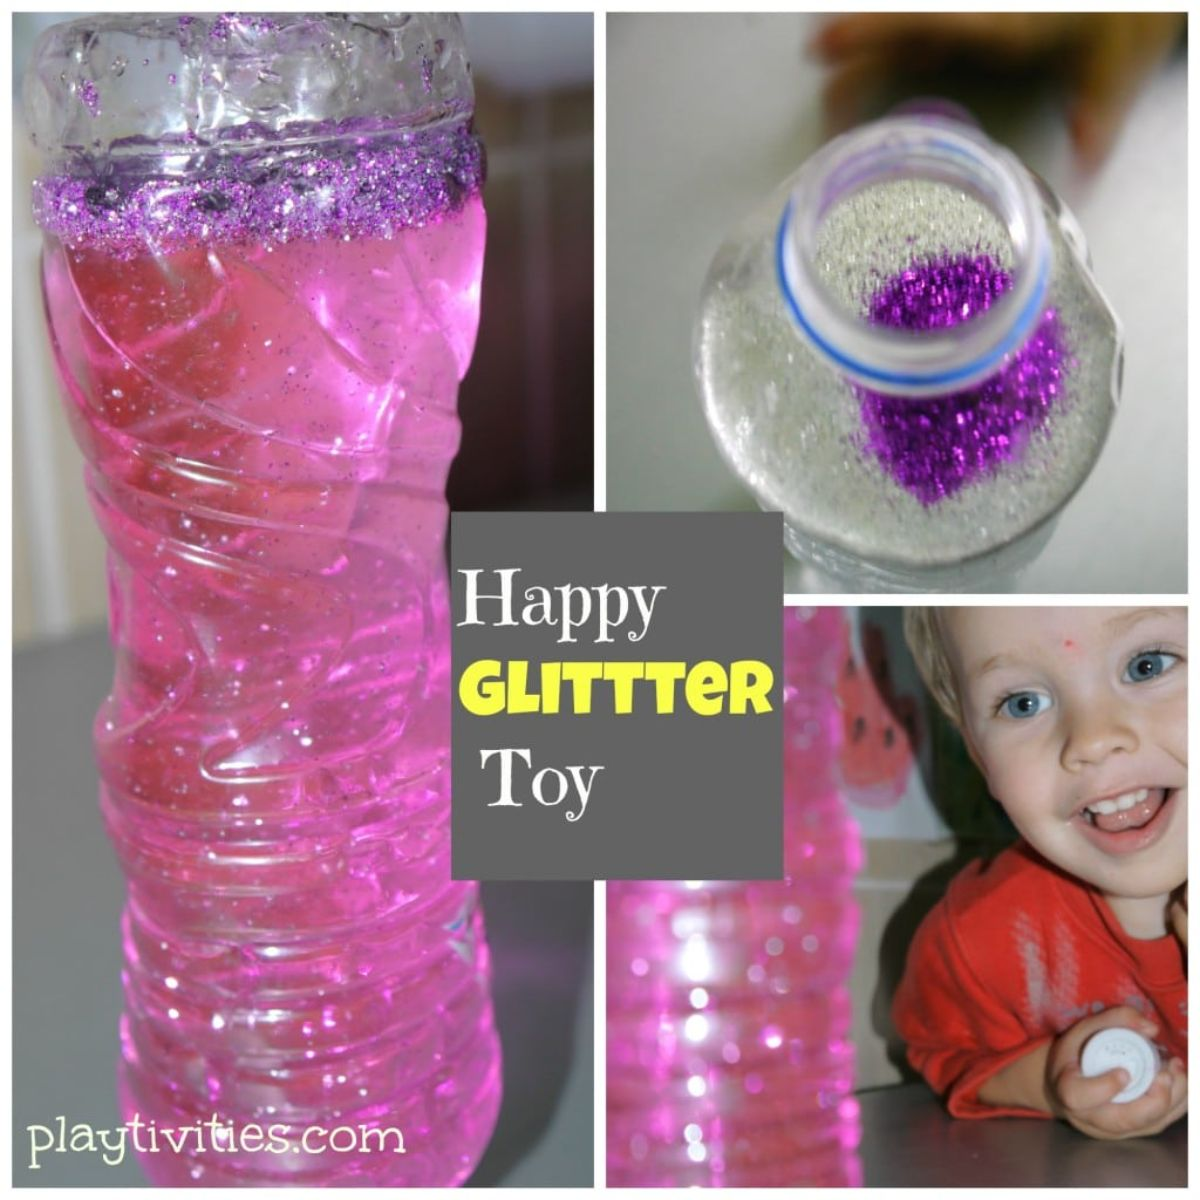 3 pictures of a plastic water bottle filled with pink glittery water. In the bottom image a child is smiling at the bottle